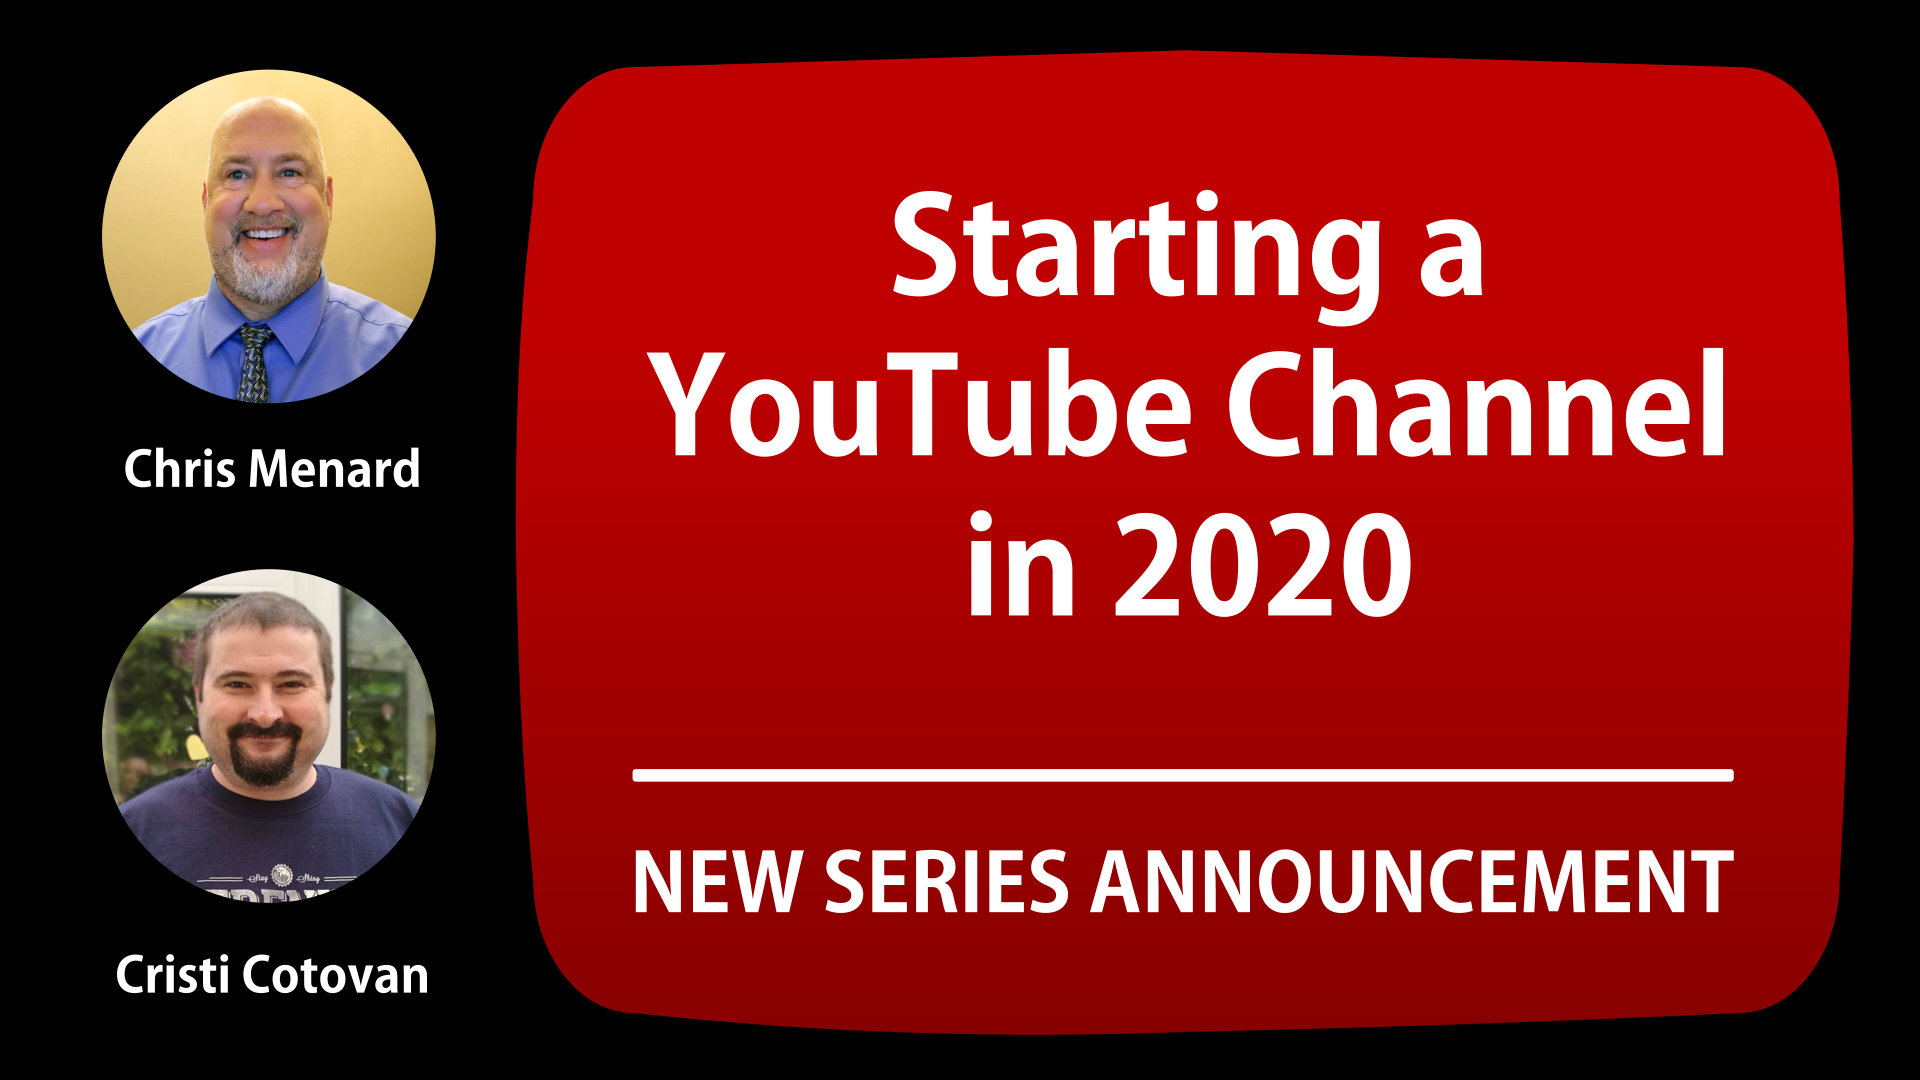 Announcing a new collaboration series on creating a YouTube channel in 2020